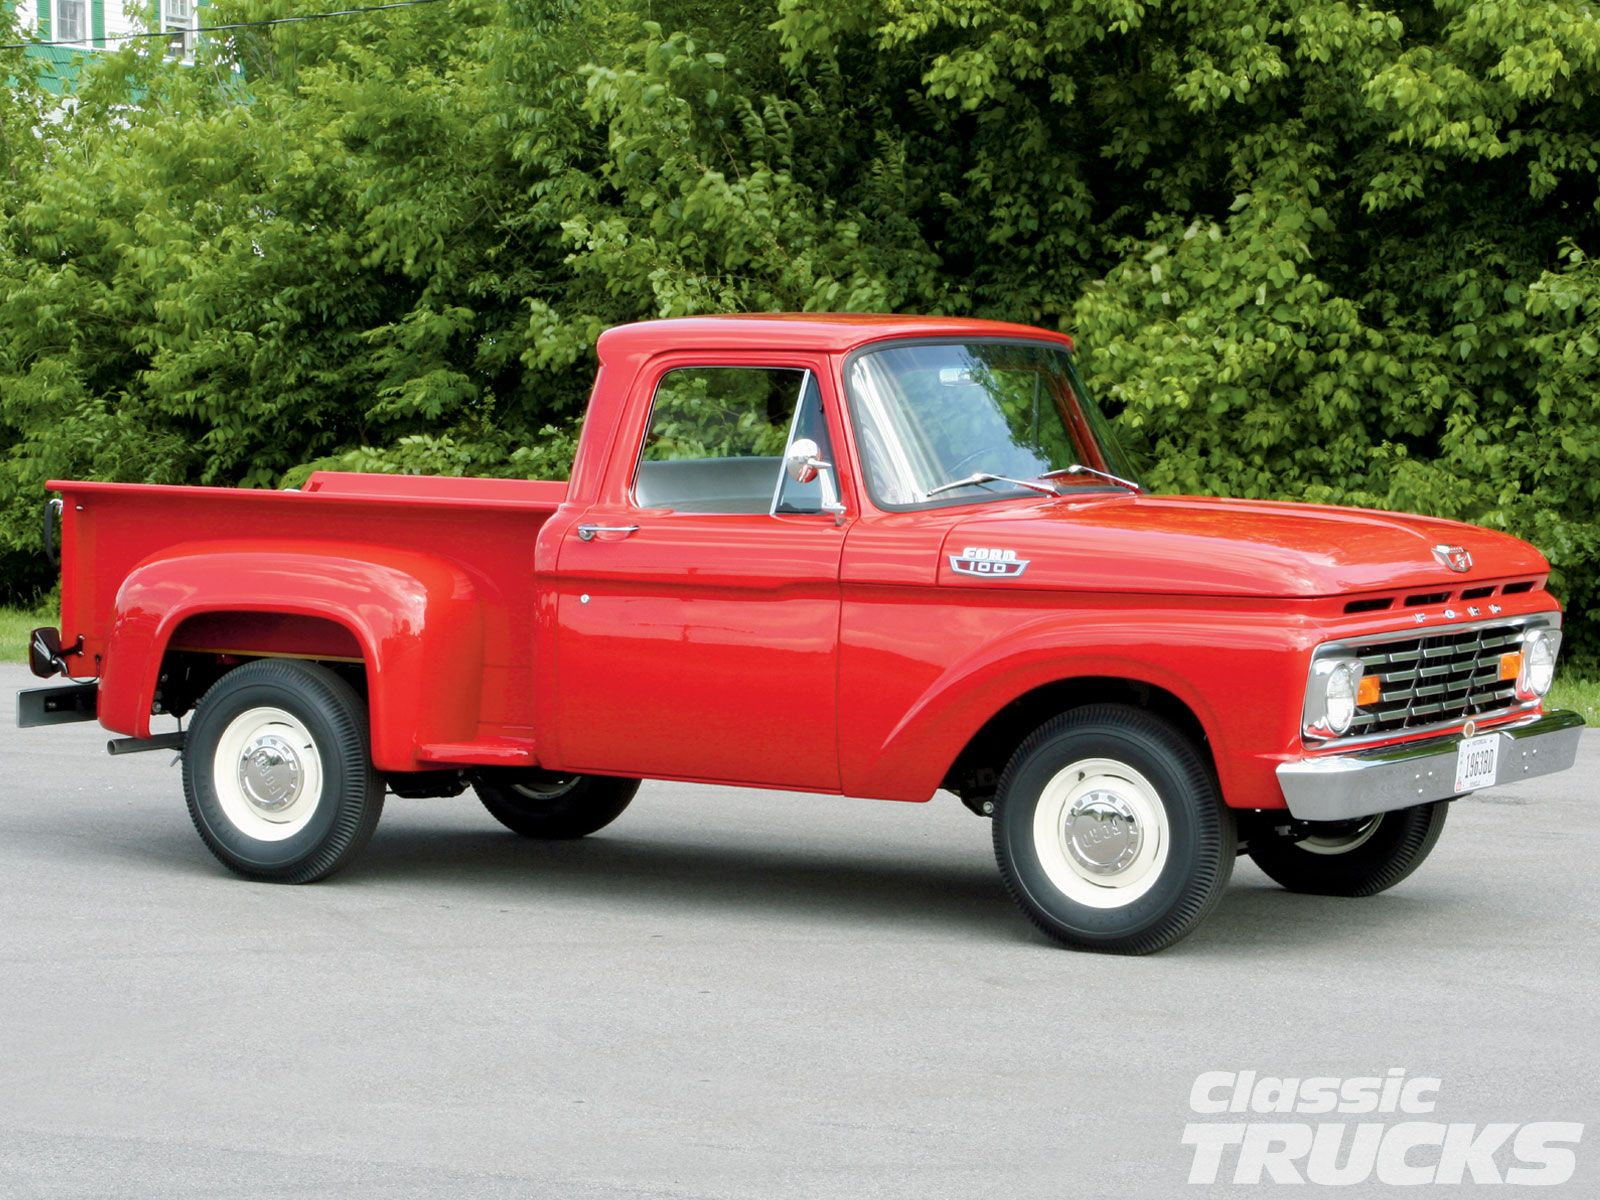 1963 Ford F100 Stock step side